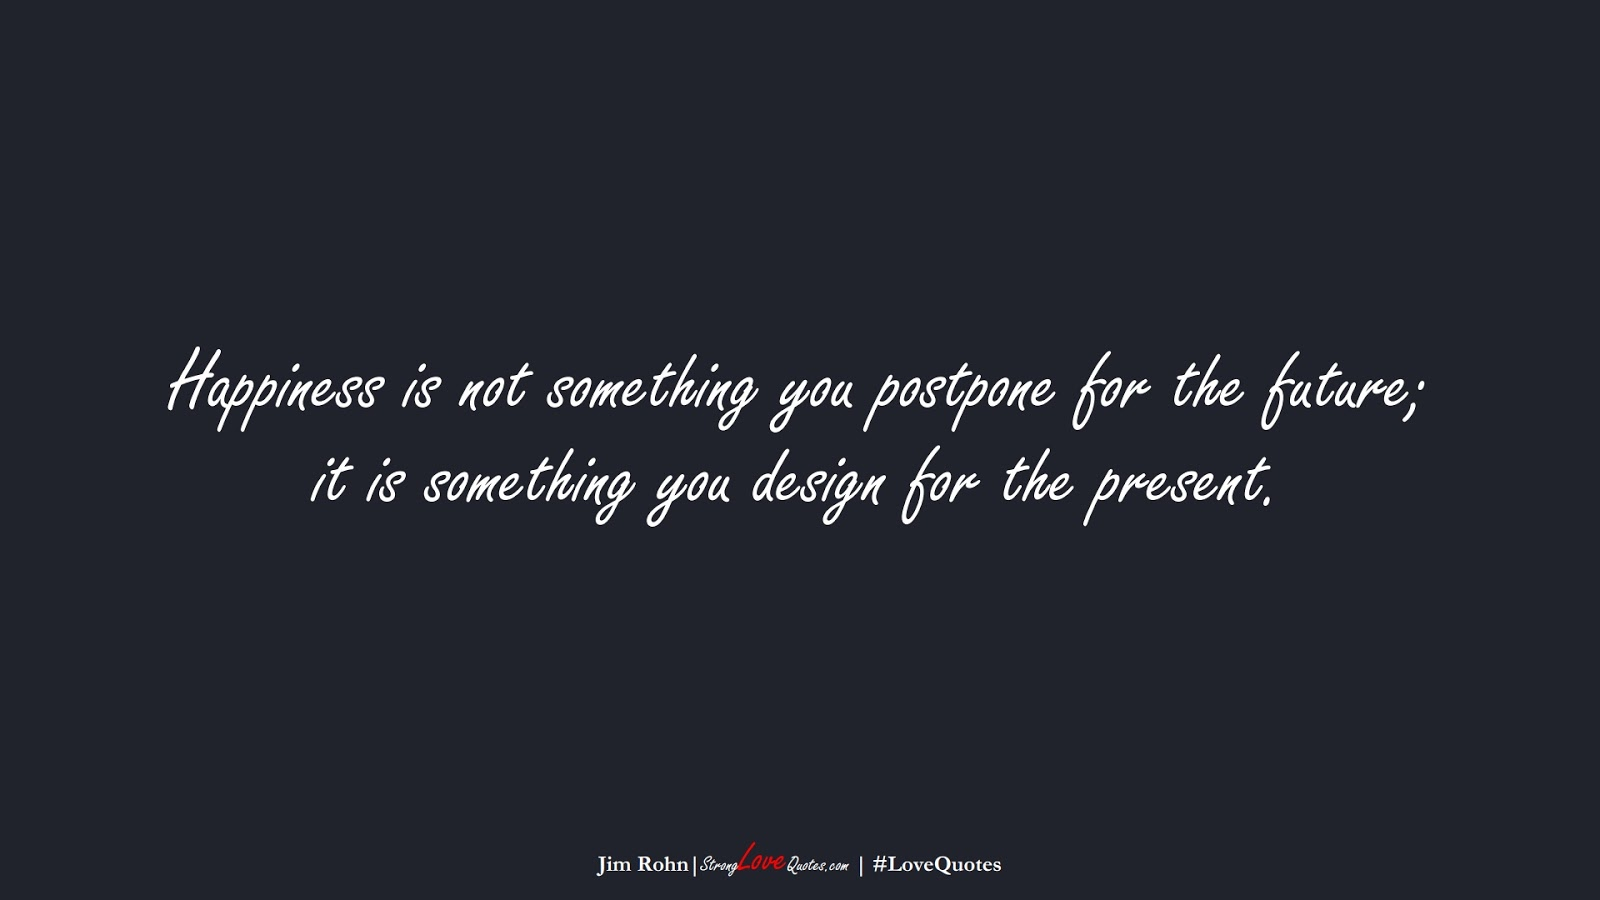 Happiness is not something you postpone for the future; it is something you design for the present. (Jim Rohn);  #LoveQuotes